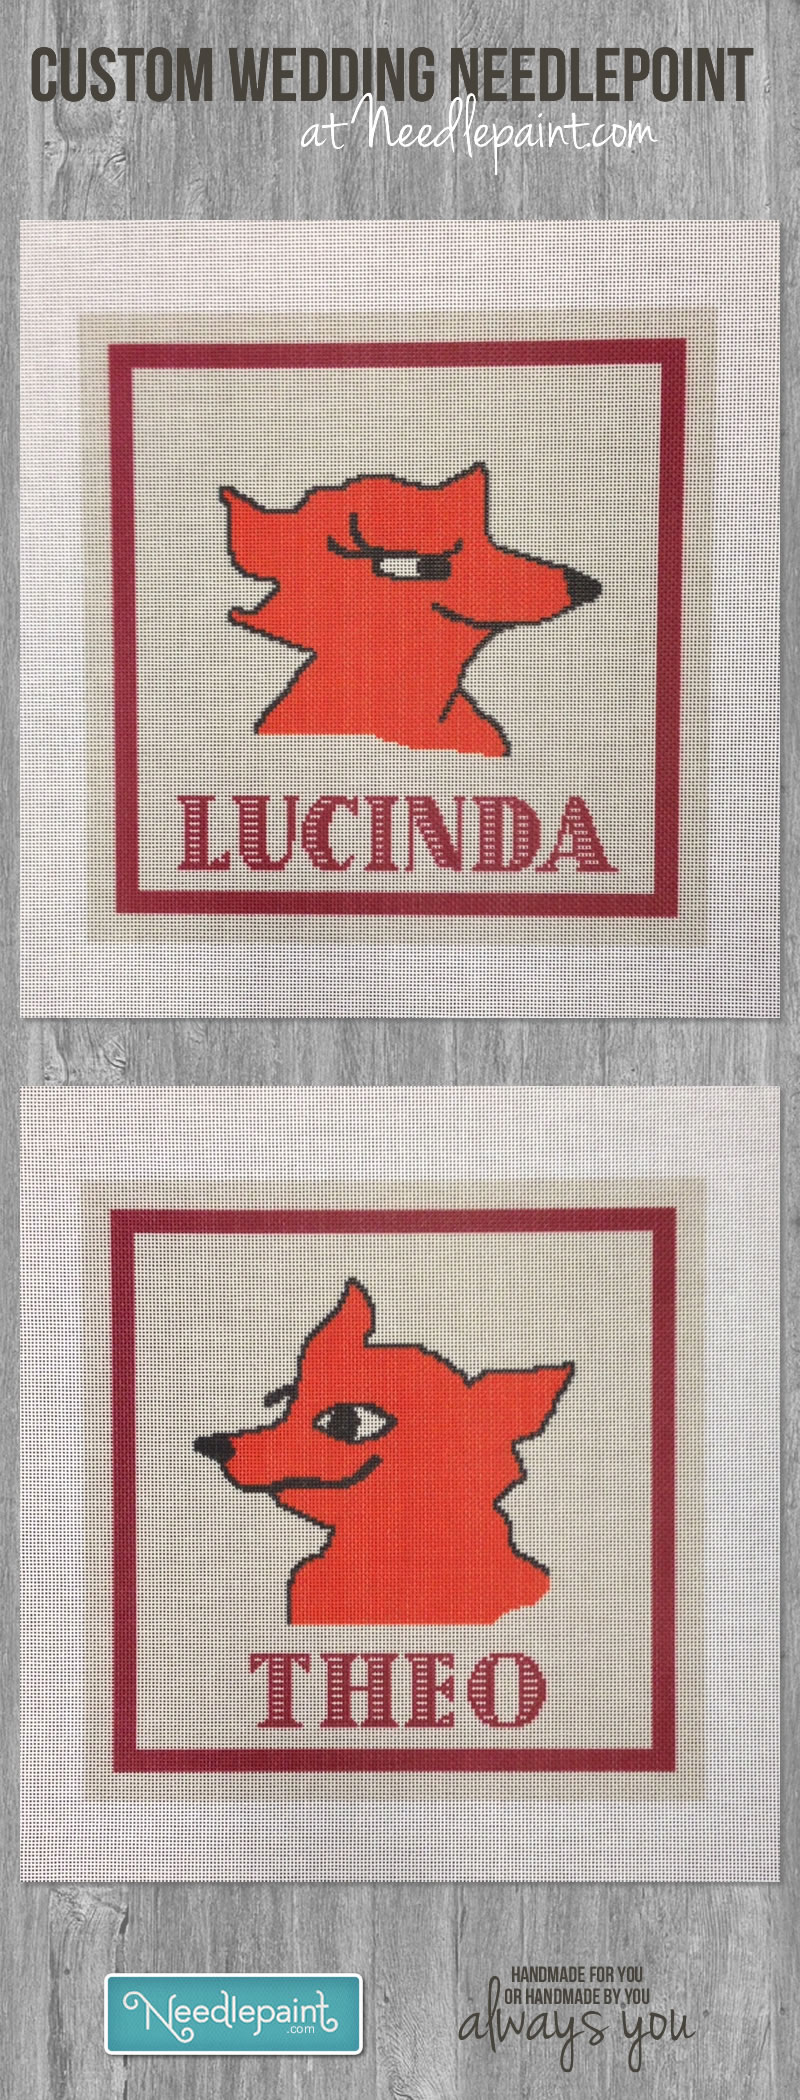 Wedding Needlepoint Foxes